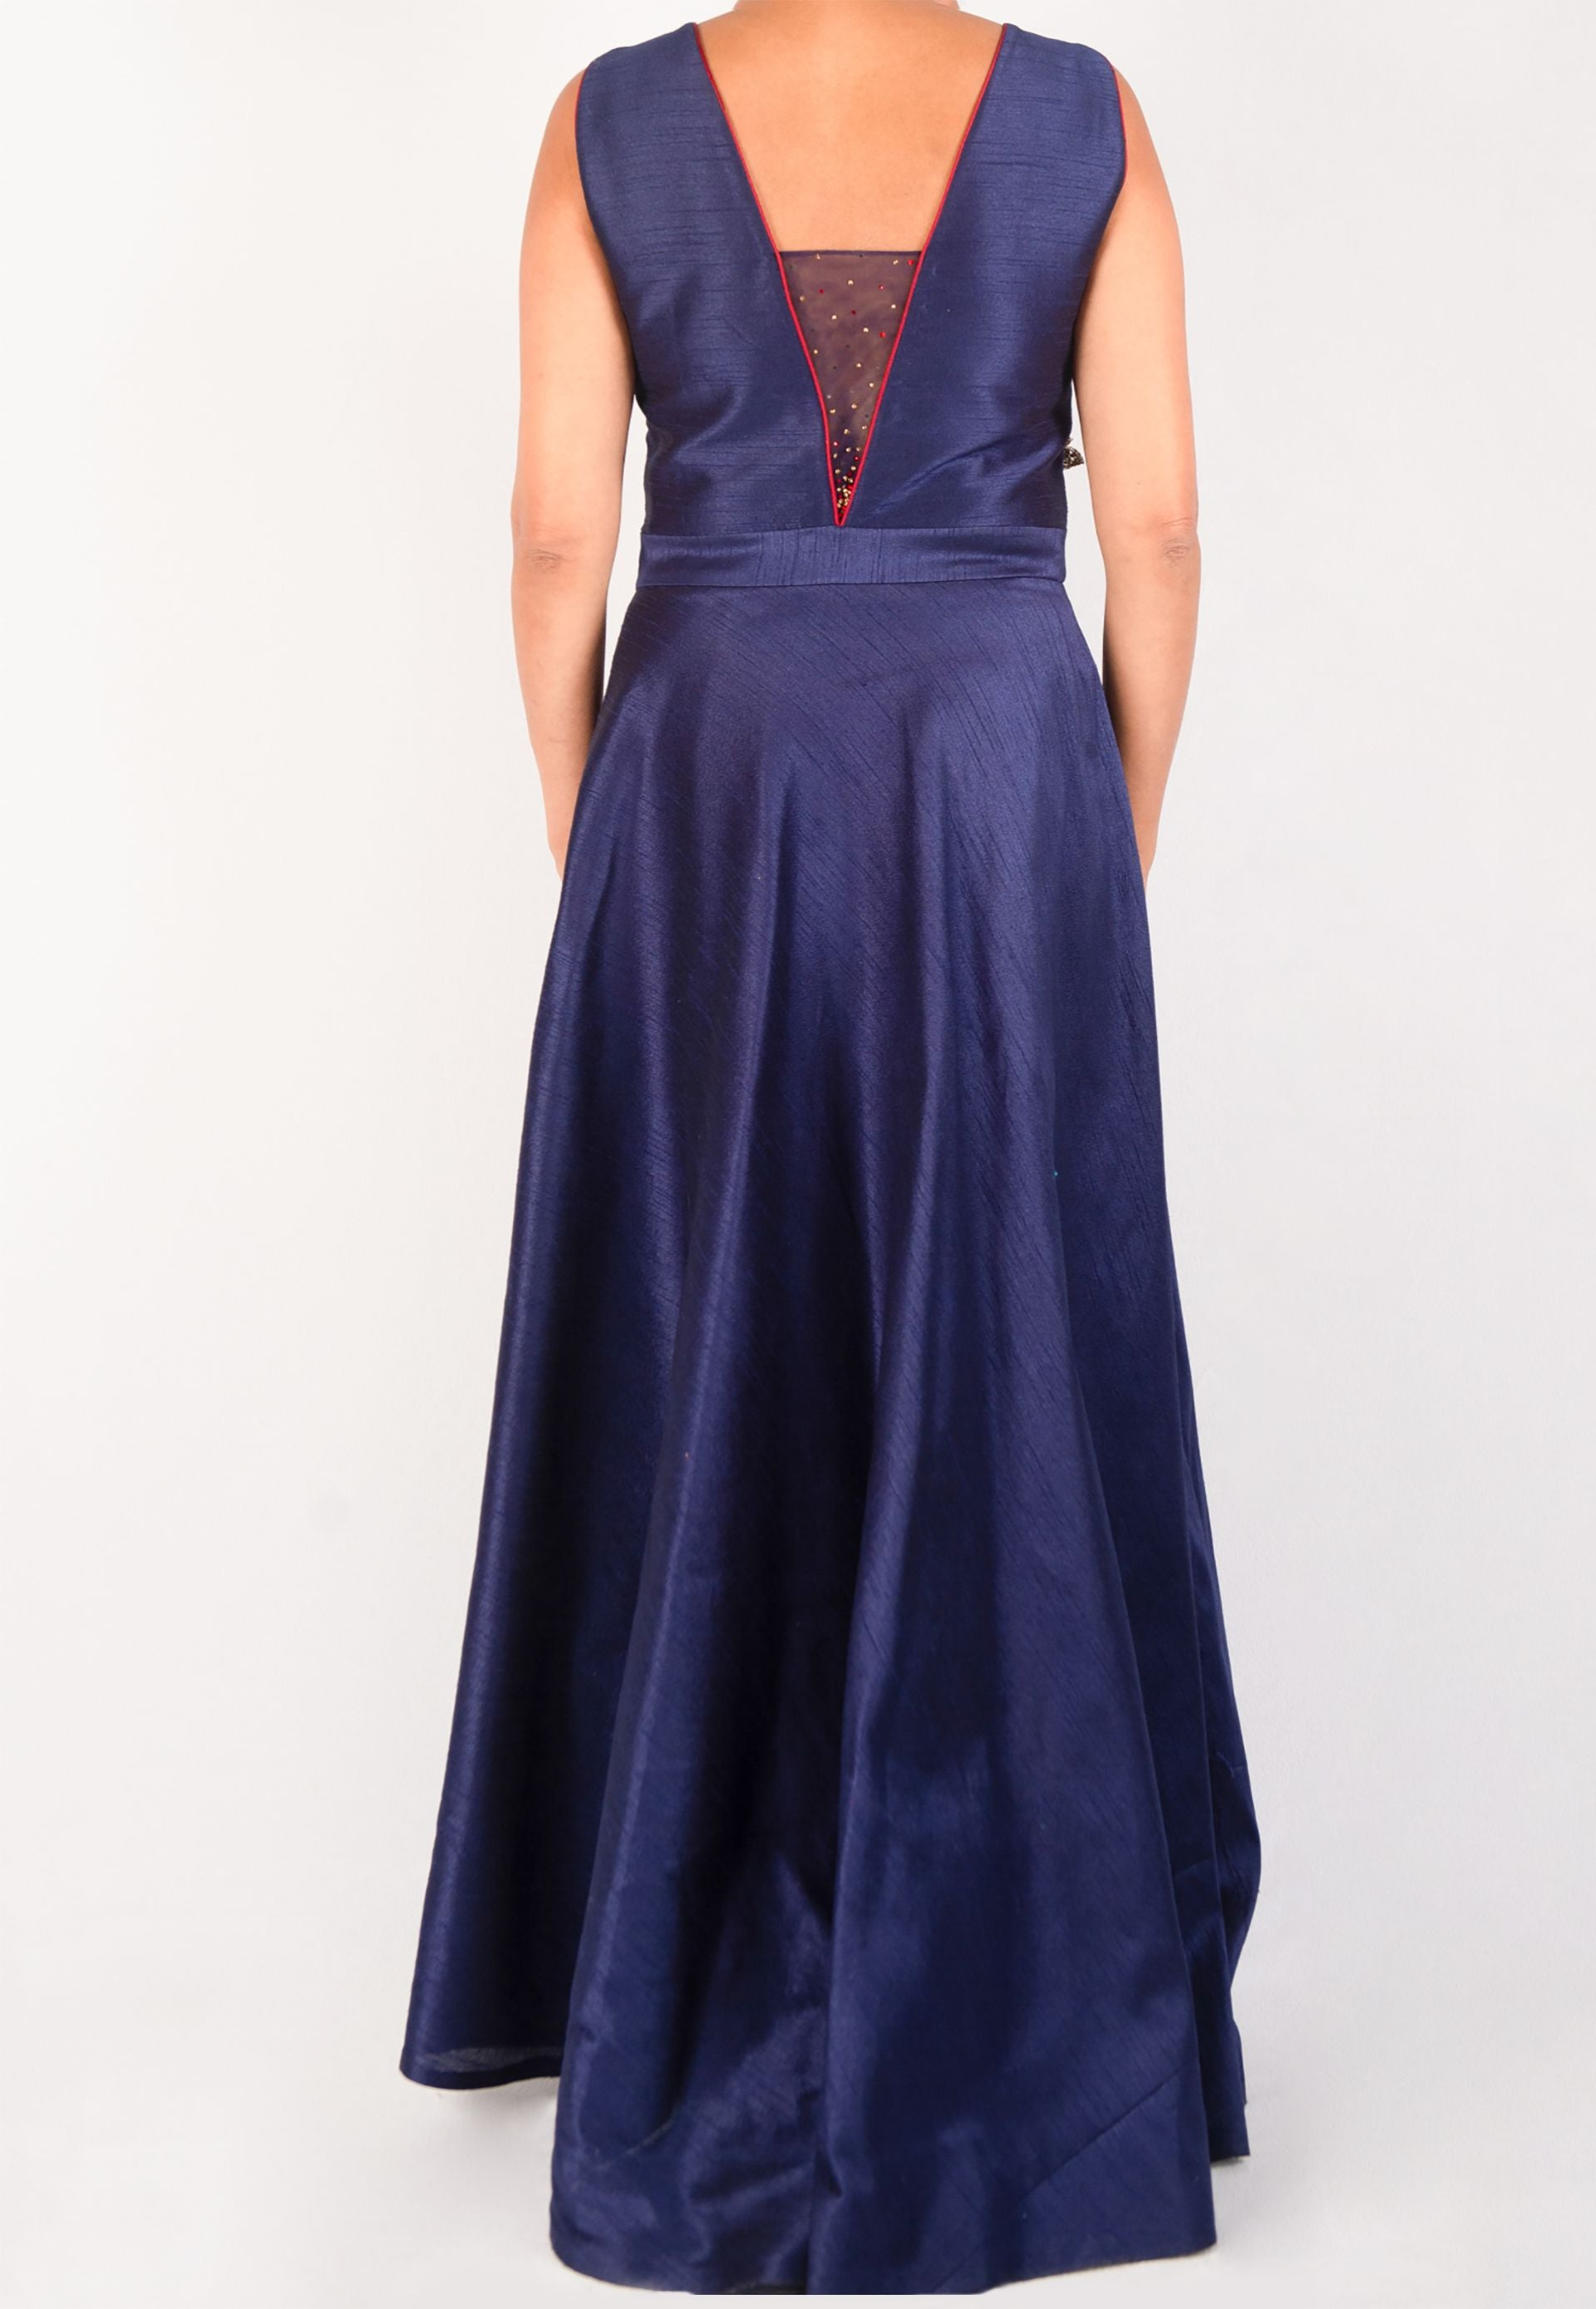 BLUE SILK HI - LOW GOWN WITH RED ROSE APPLIQUÉ